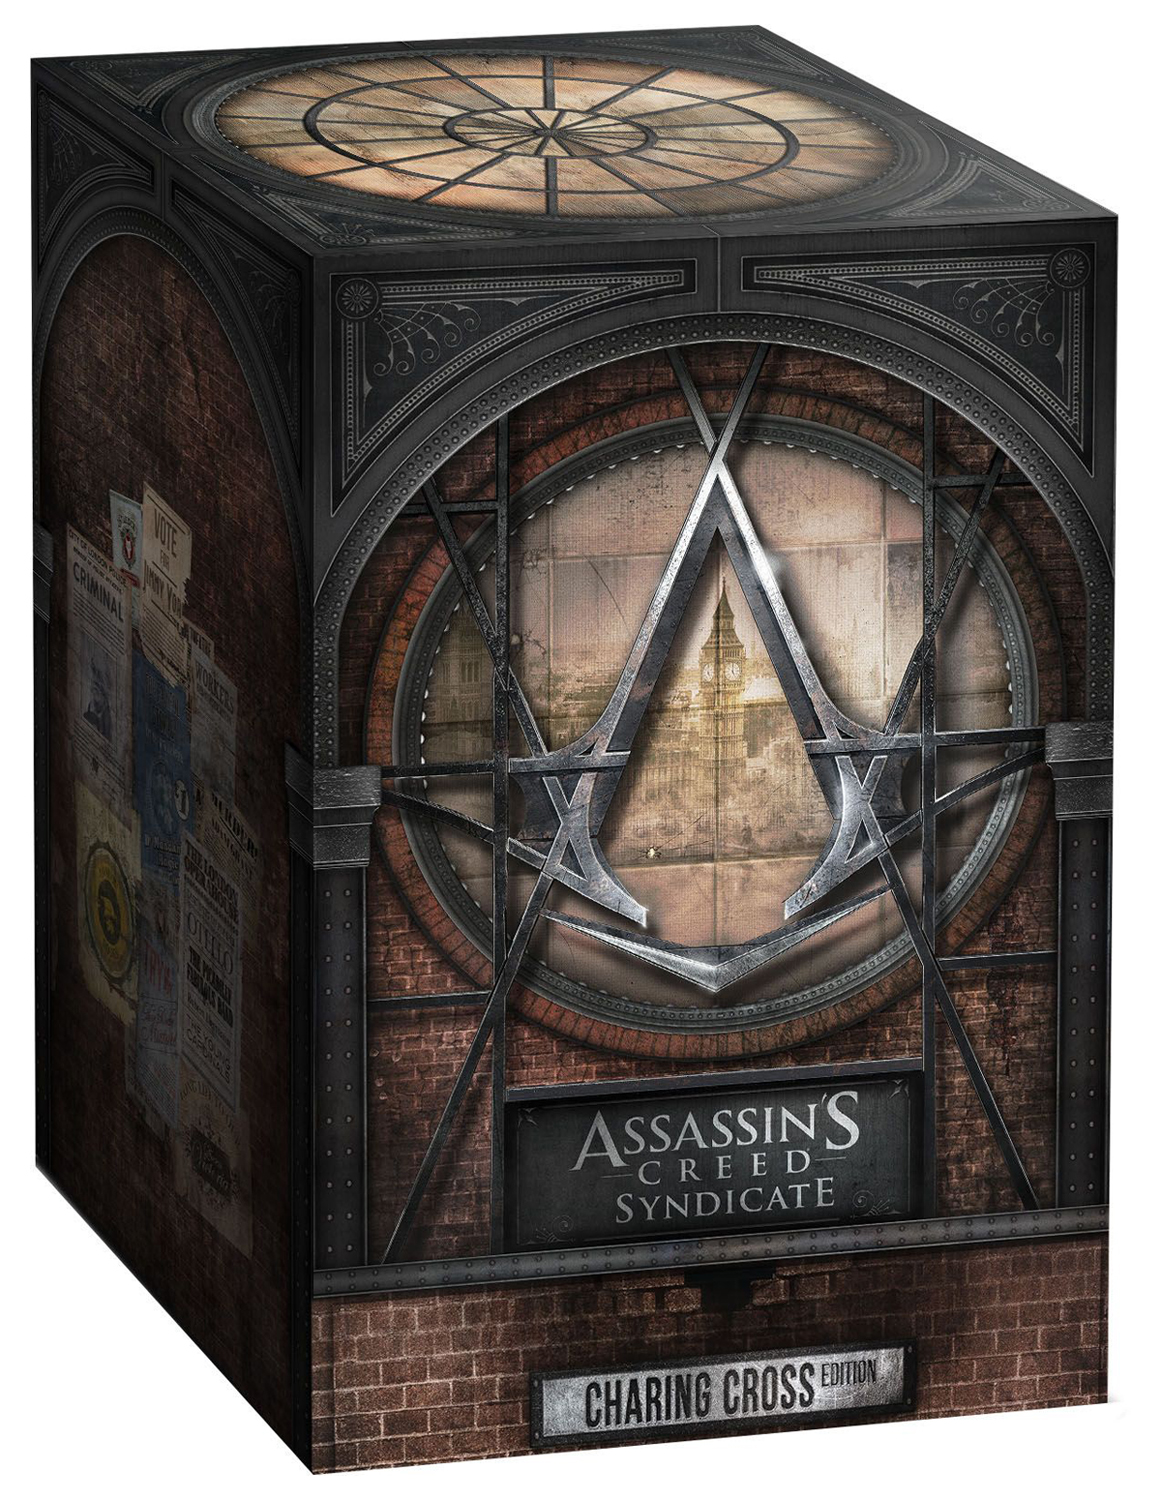 Assassins Creed - Syndicate - Charing Cross Edition XBOX ONE